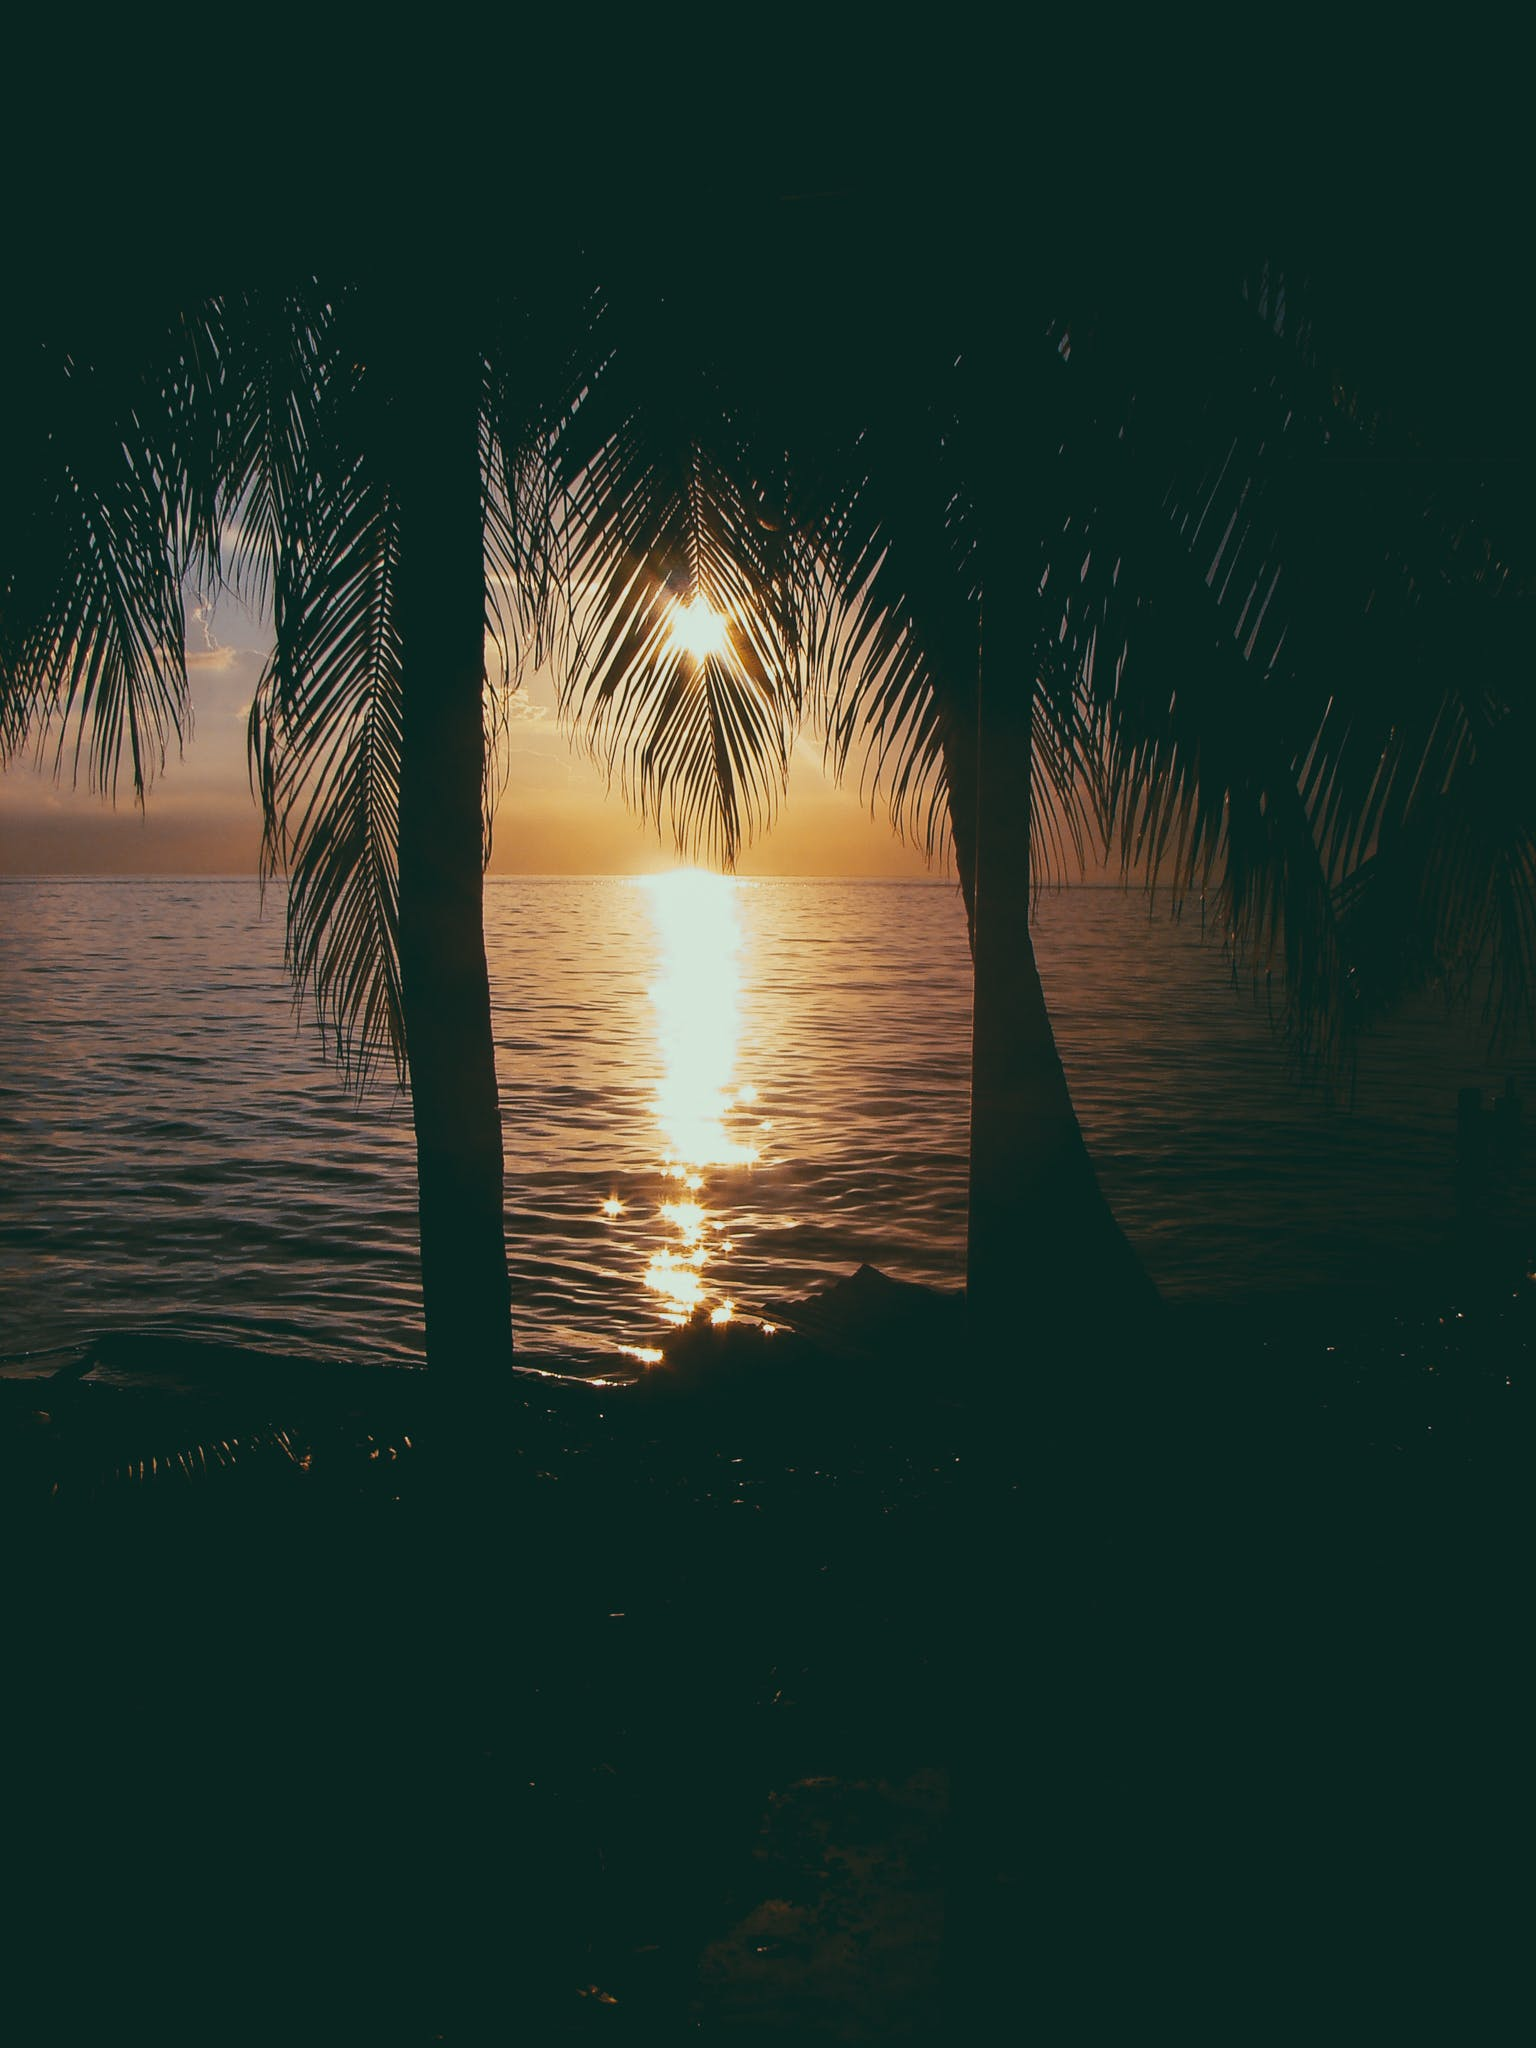 Photo of Two Coconut Trees on Beach at Sunset